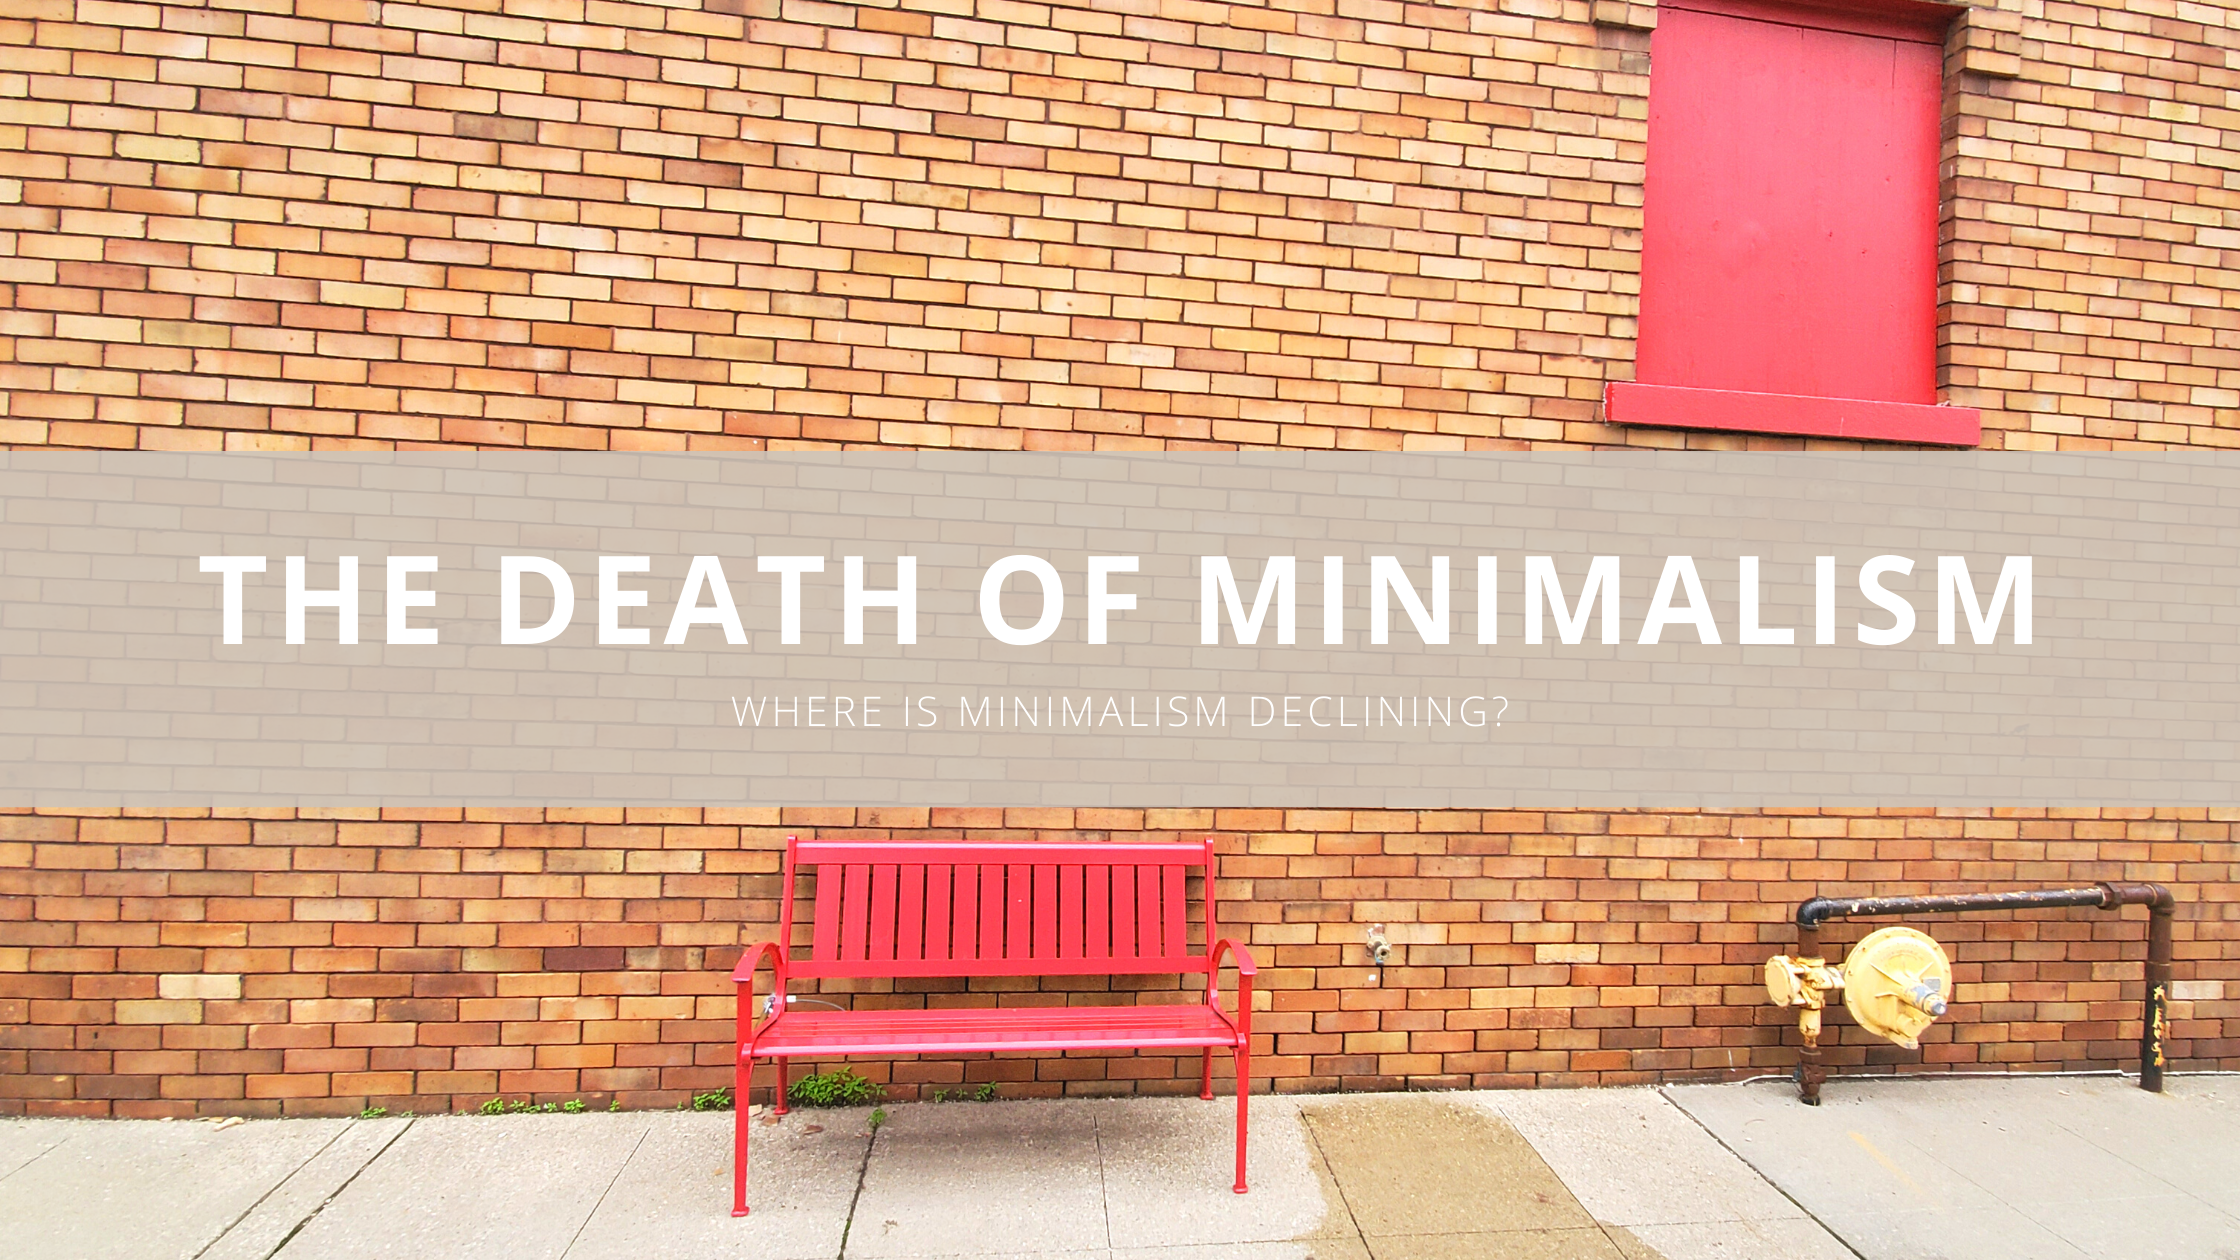 The Death of Minimalism